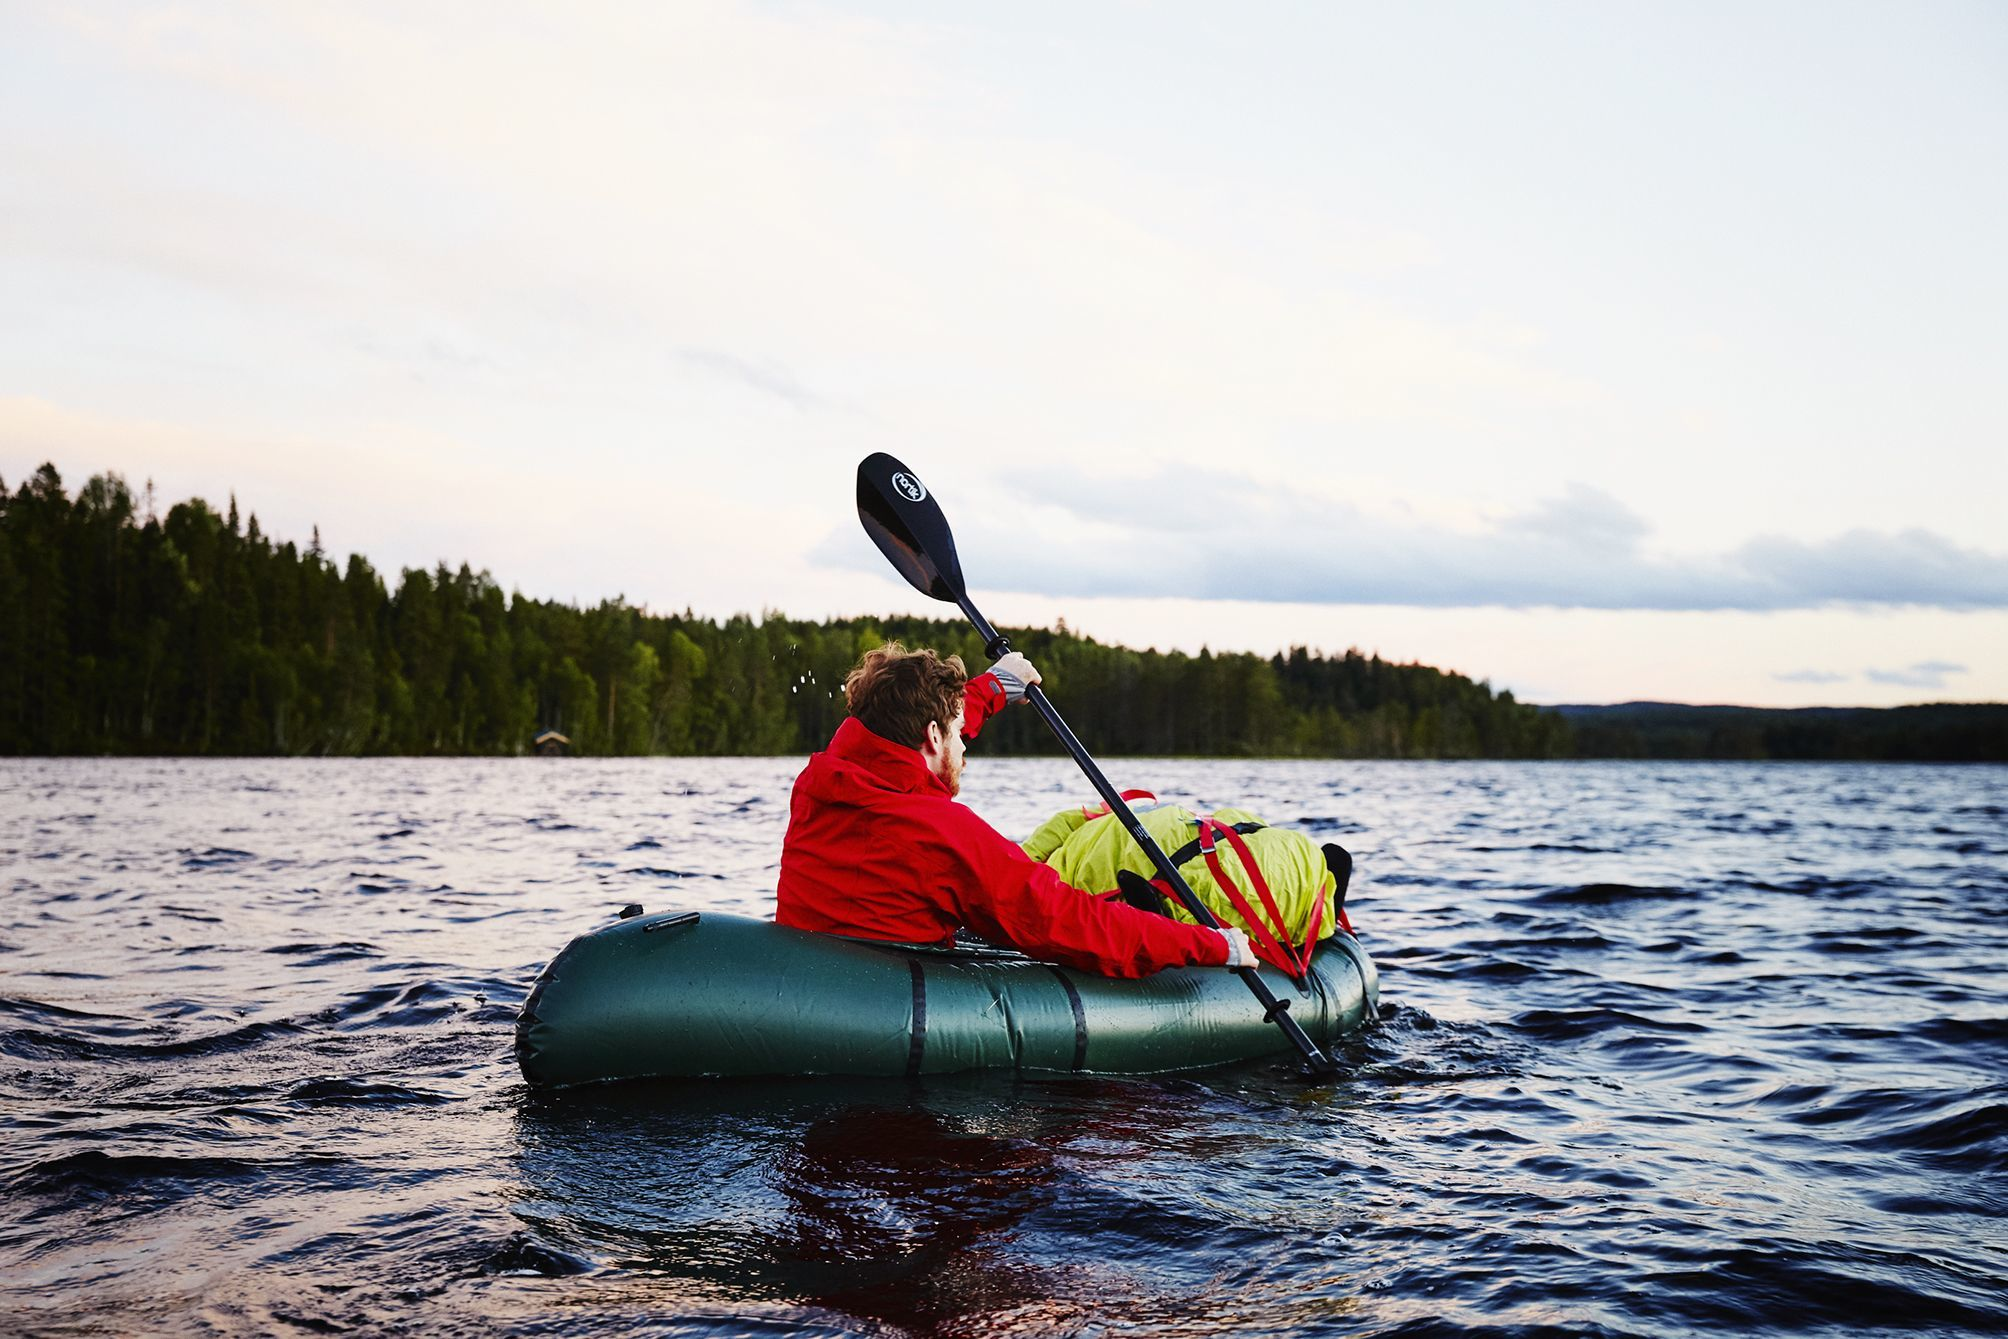 Young man paddling his packraft across a lake at dusk in the district near Oslo.